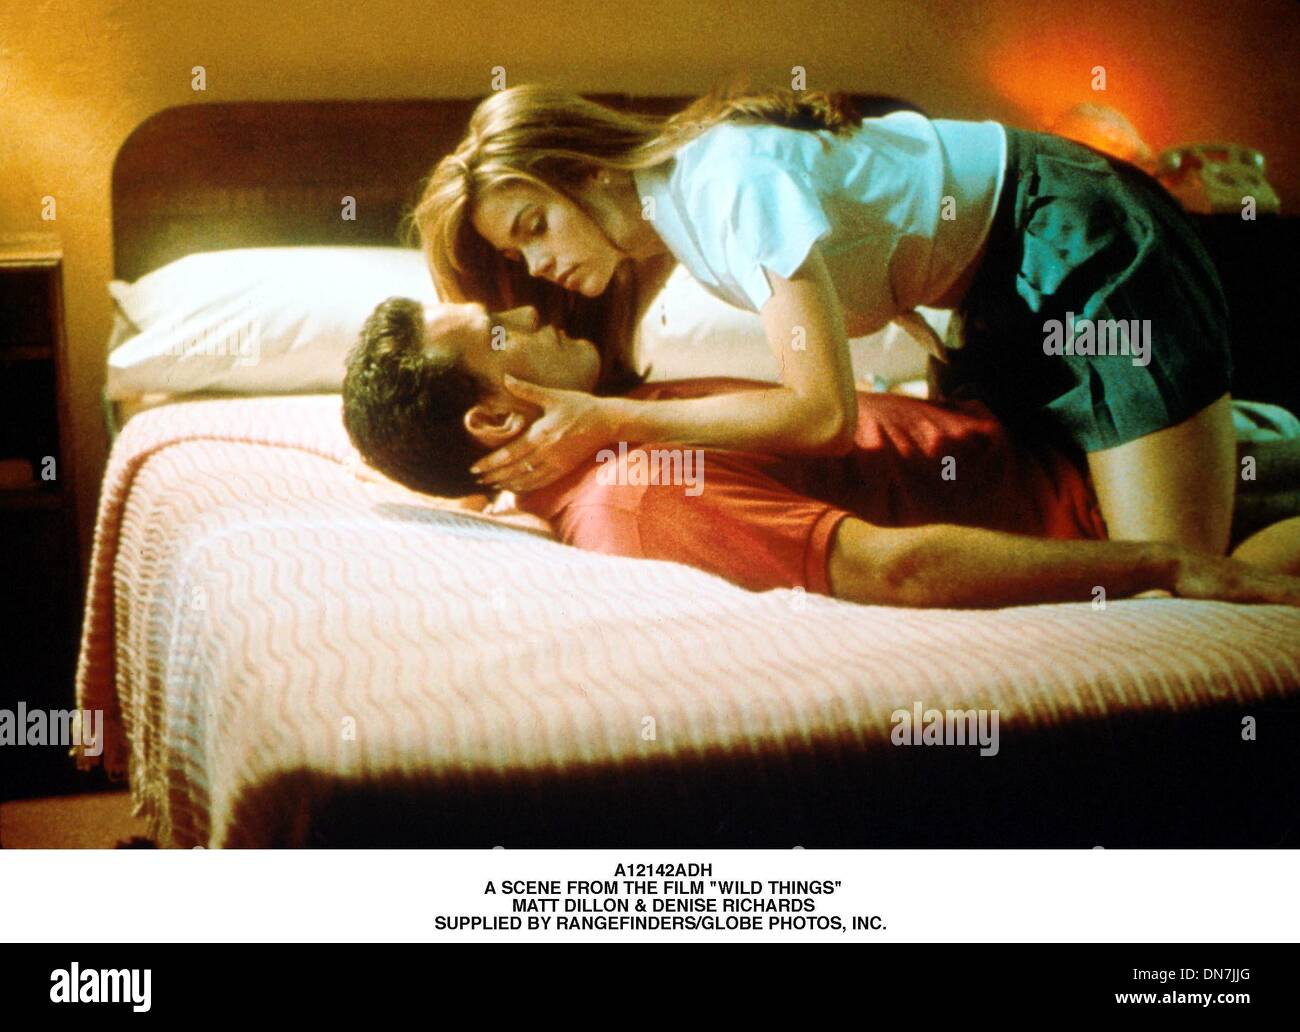 June 22, 2001 - A12142ADH.A SCENE FROM THE FILM ''WILD THINGS''.MATT DILLON & DENISE RICHARDS.SUPPLIED - Stock Image